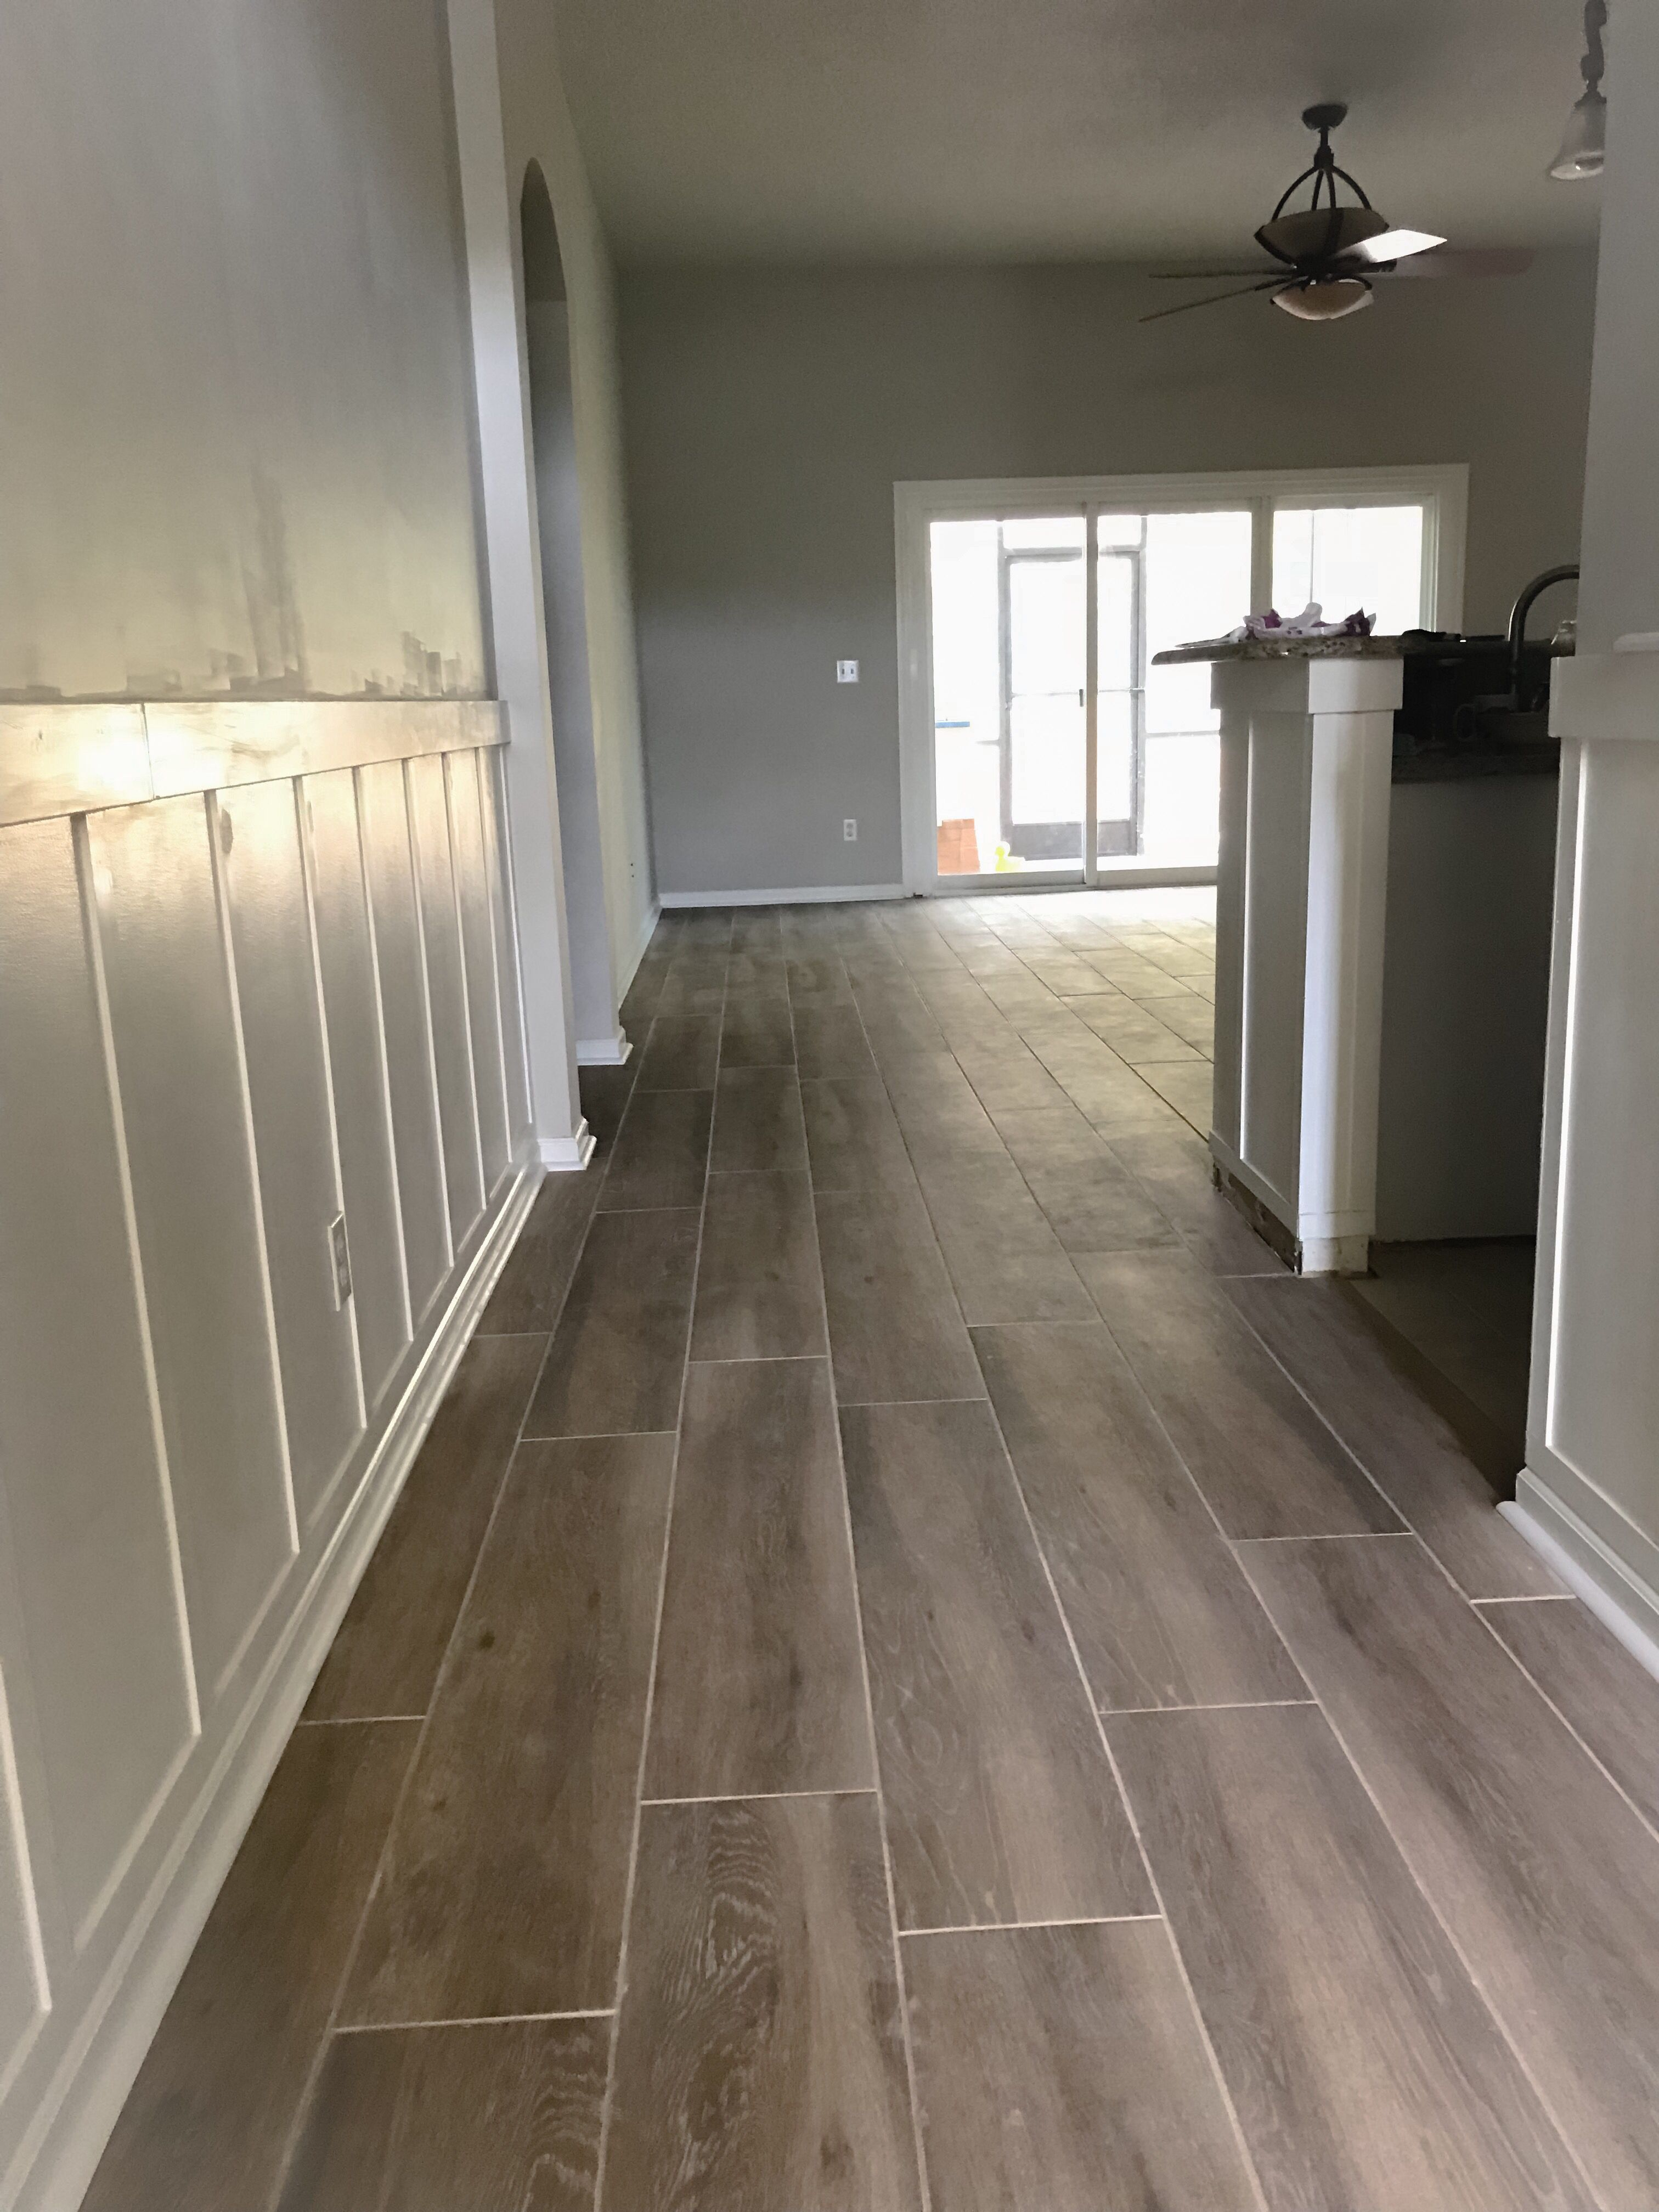 Home Improvement House Of Gray Wood Look Tile Floor Wood Plank Tile Plank Tile Flooring